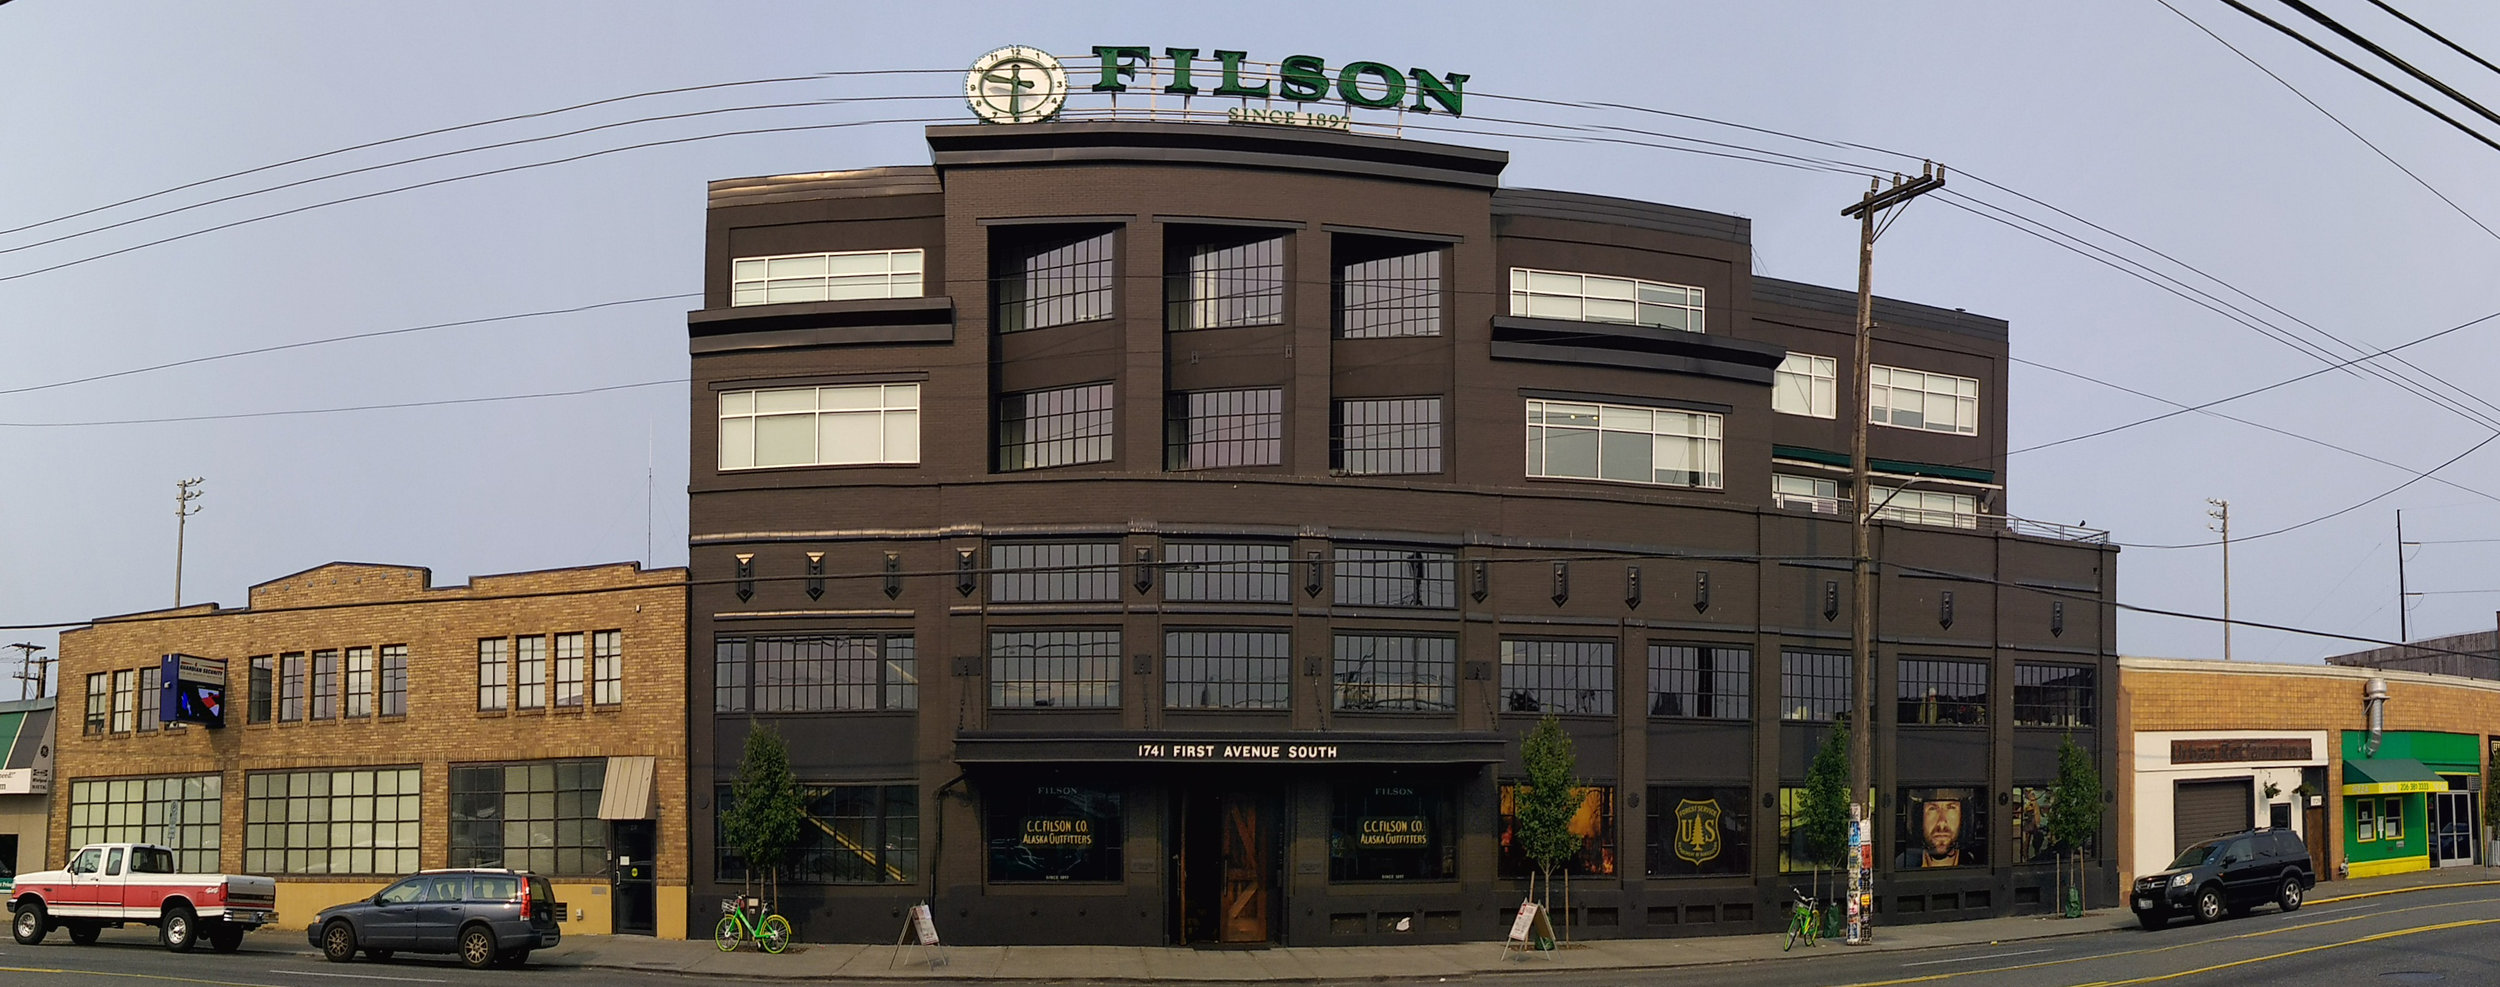 Filson Headquaters - Seattle